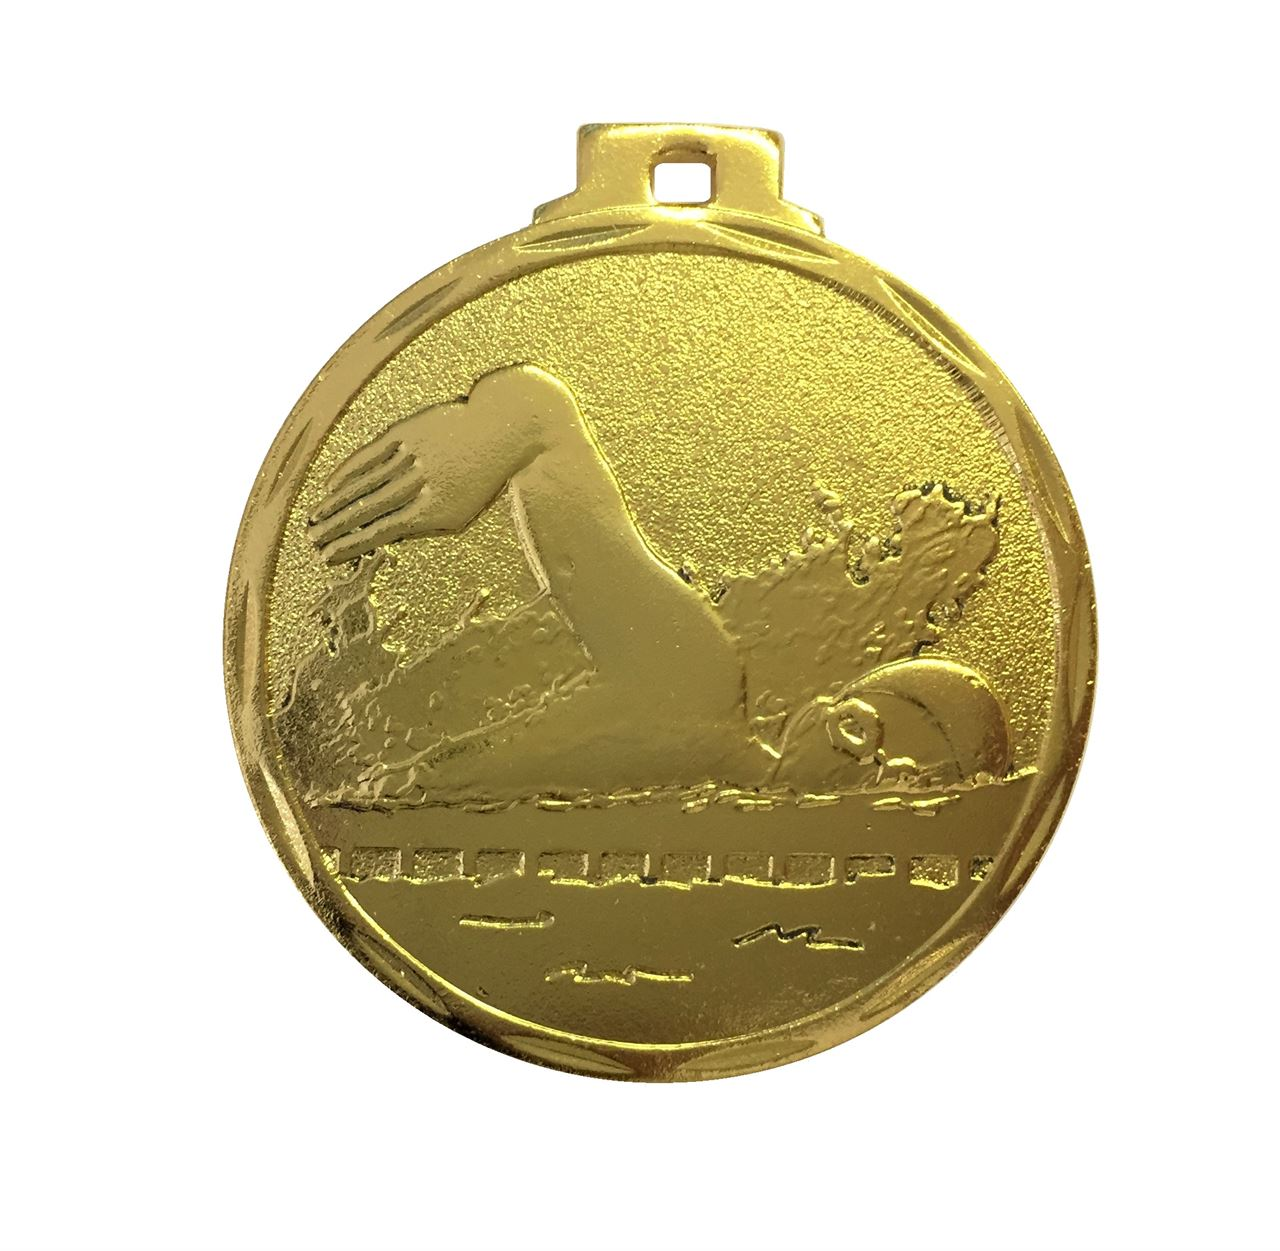 Budget Swimming Medal Gold - 7907